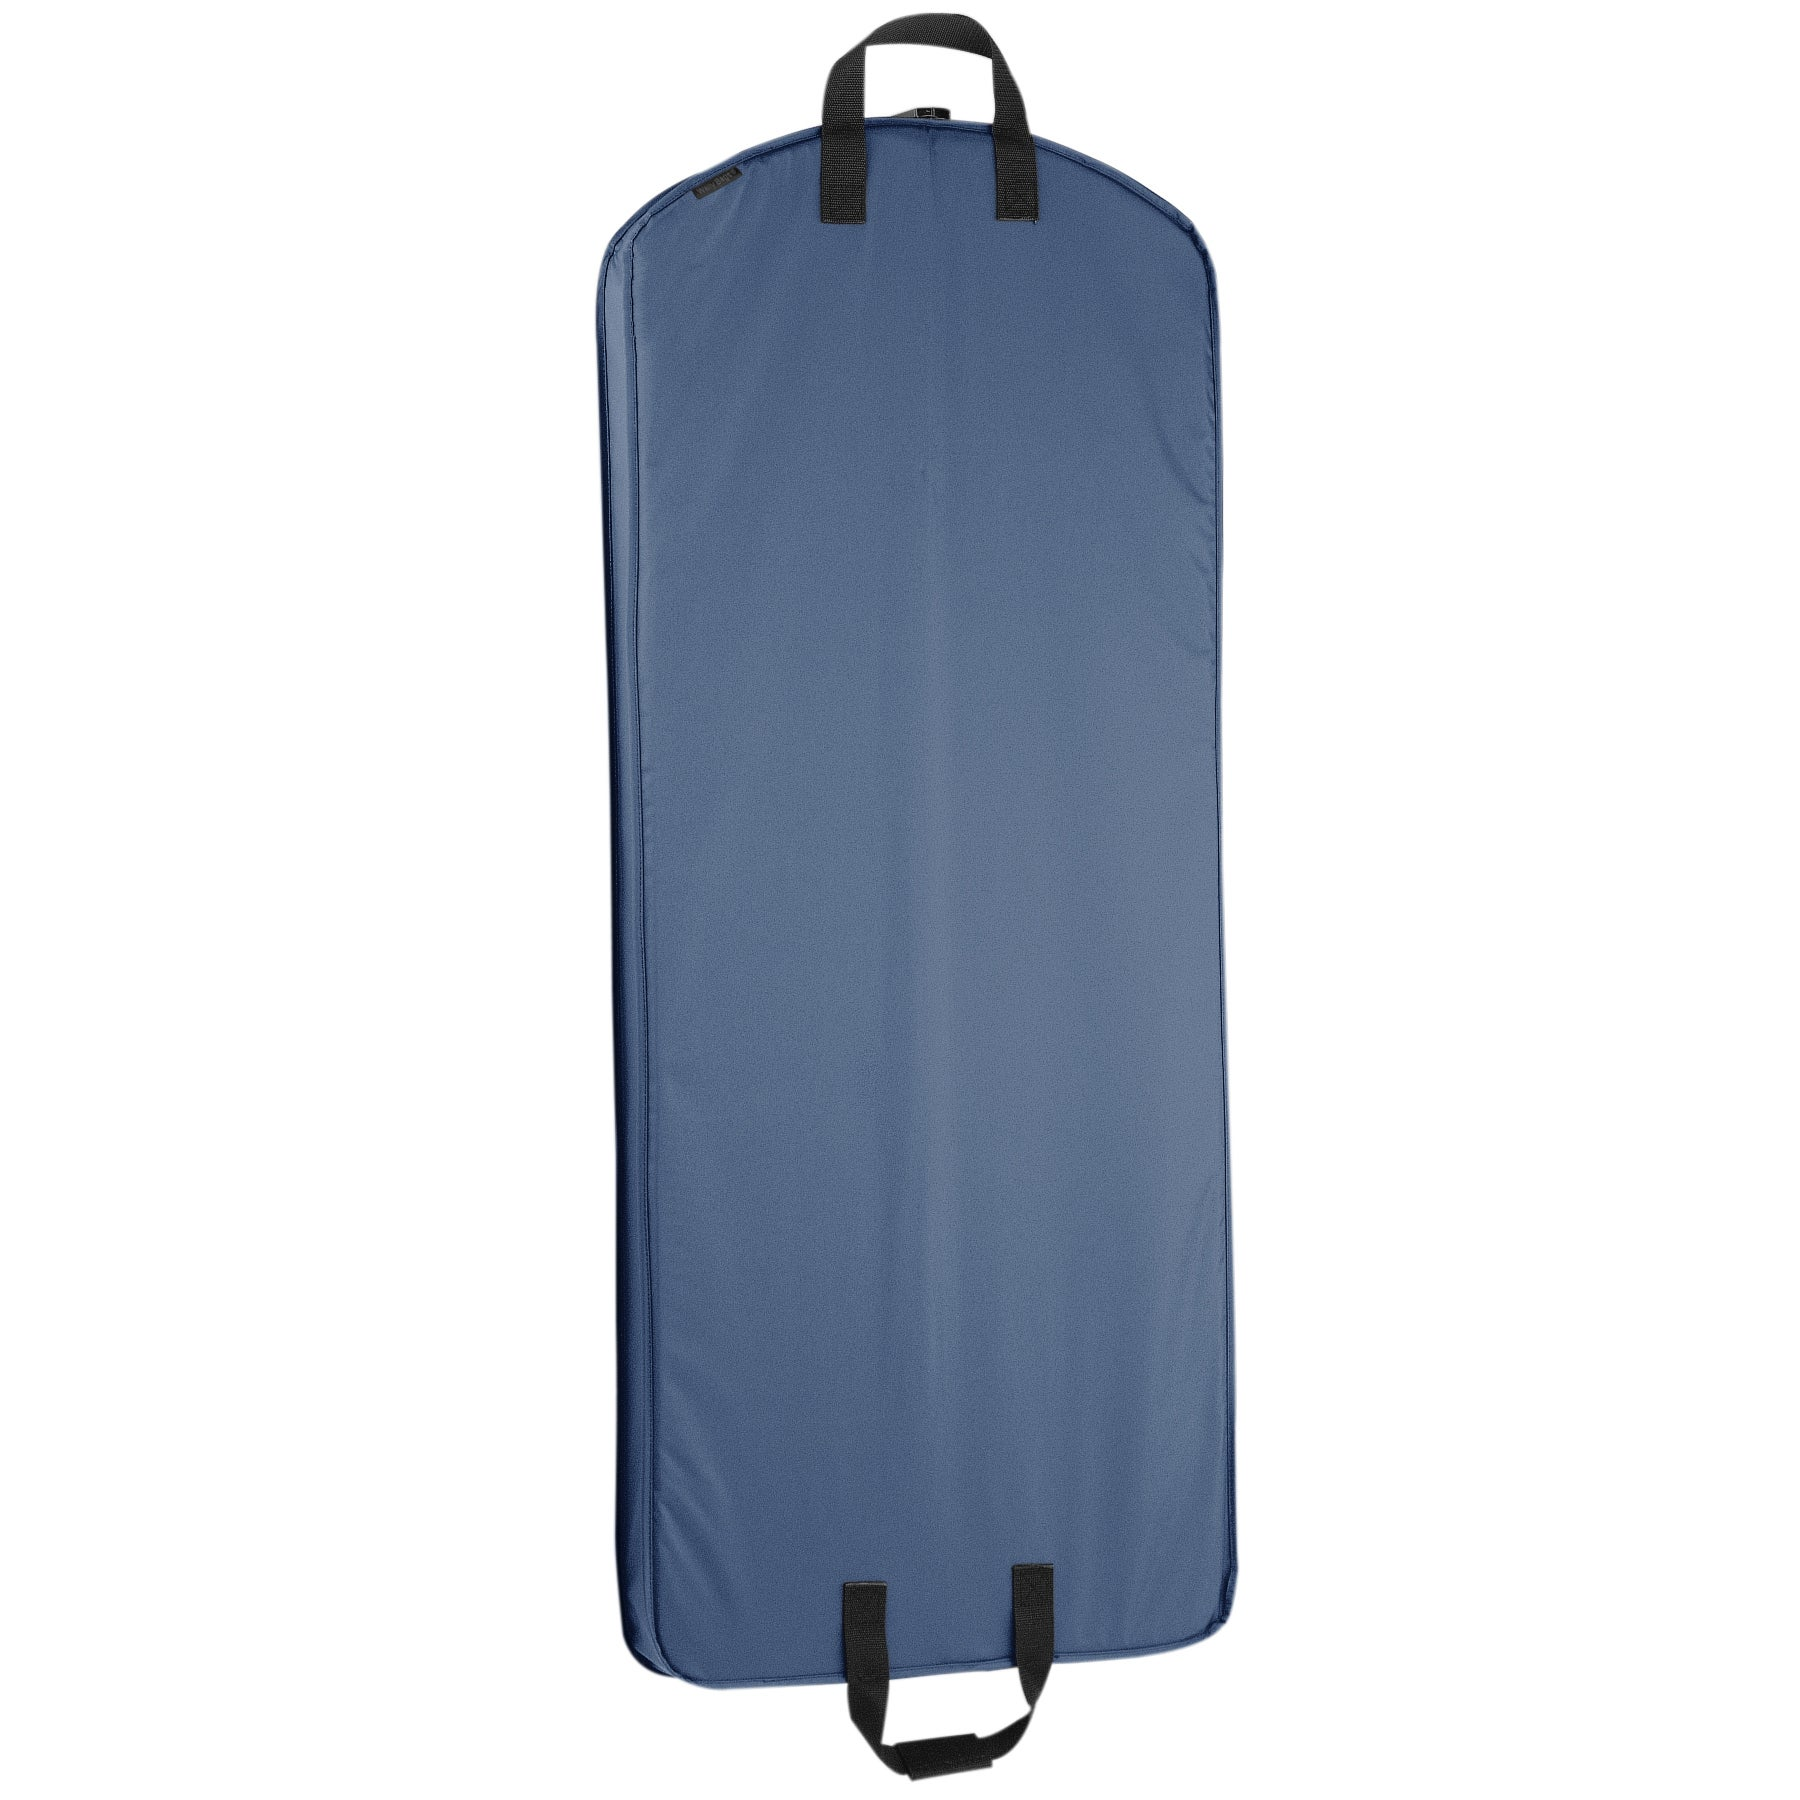 Wallybags 52 Inch Garment Bag Free Shipping On Orders Over 45 7585272